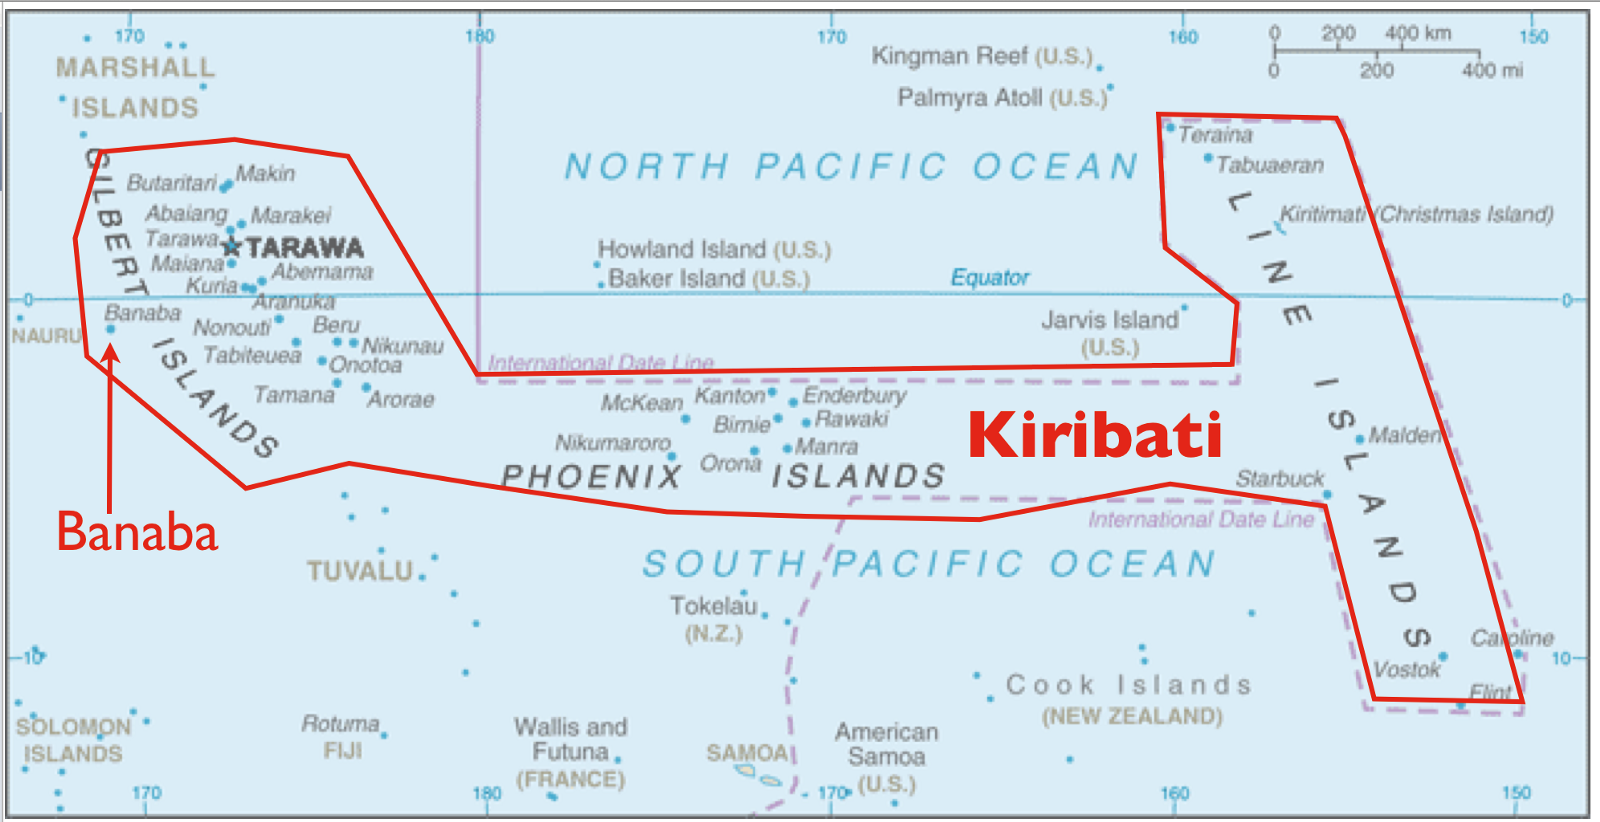 The Gilbert Islands Used To Be Owned By The Uk While The Us Used To Own The Phoneix And Line Islands At This Time The Gilbert Islands Were 12